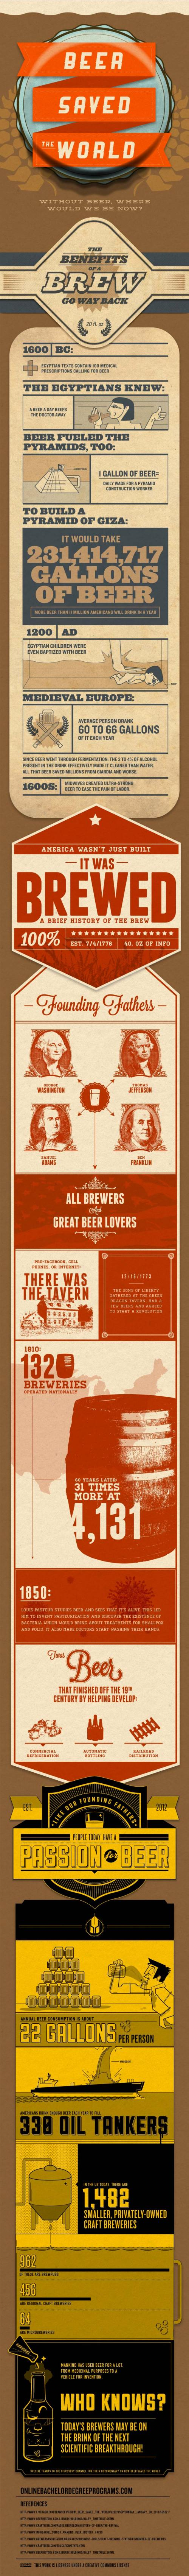 Informative graphic depiction on how beer saved the world